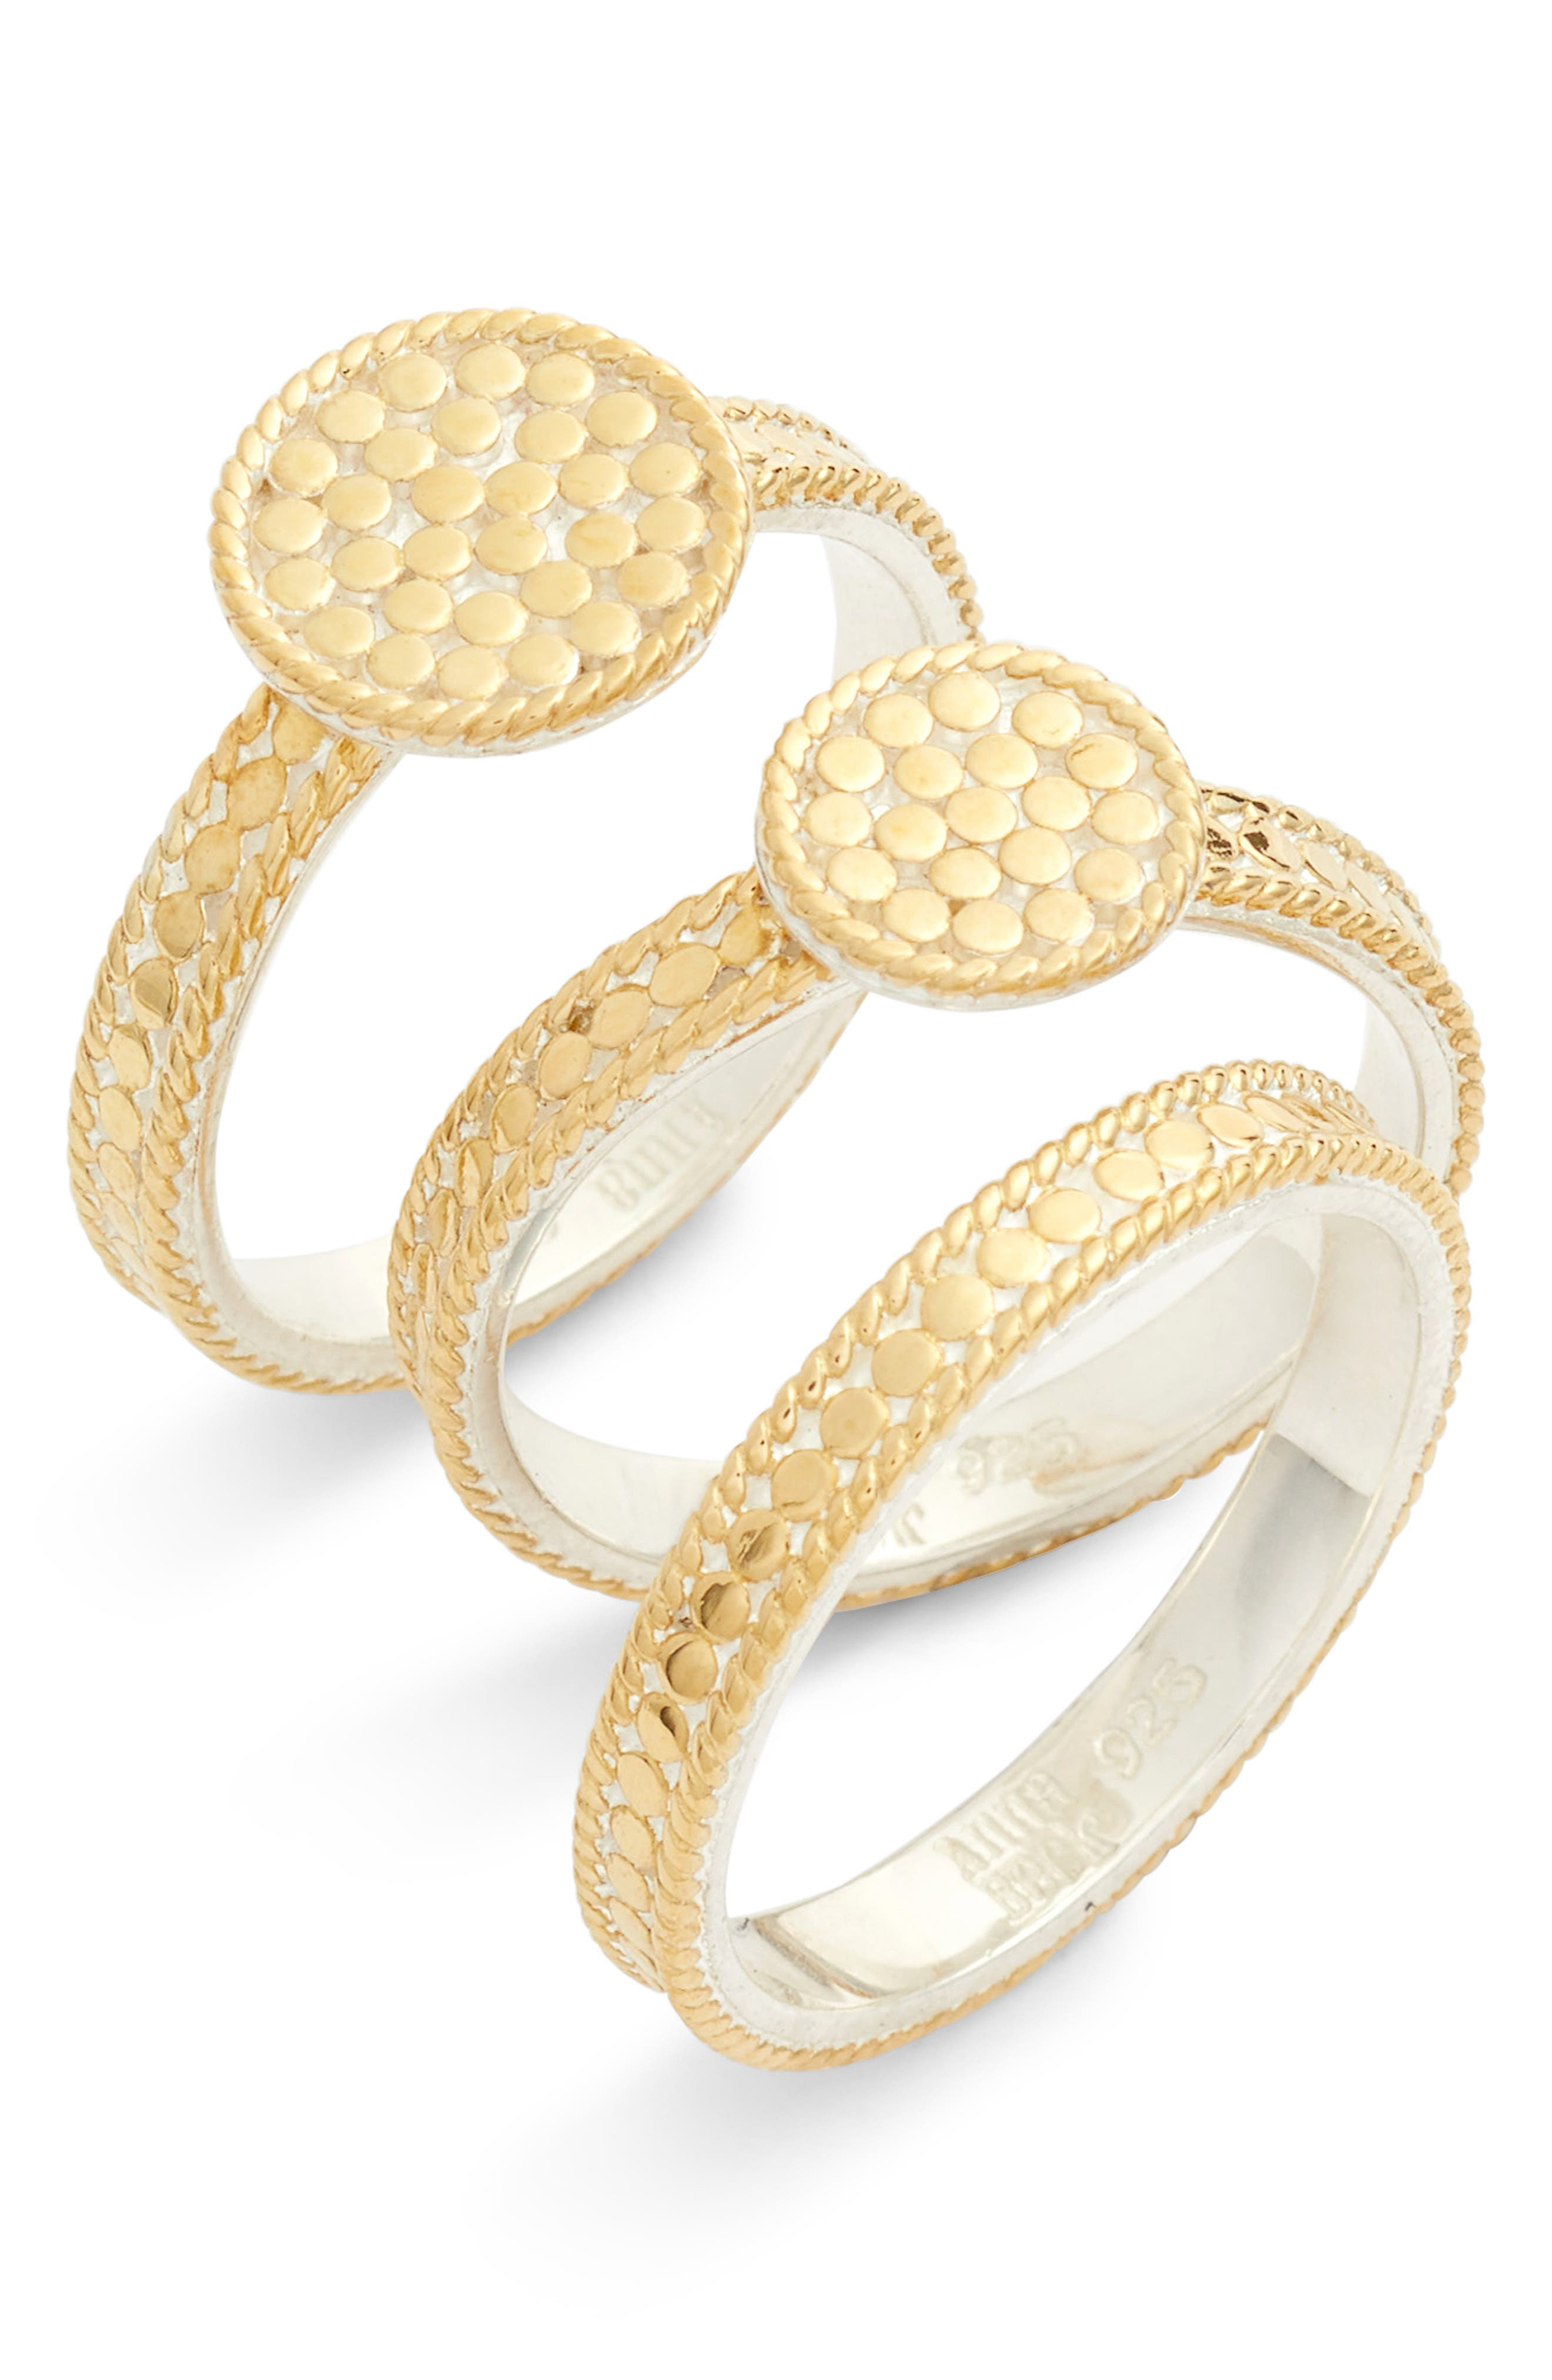 Gold Plate Disc Set of 3 Stacking Rings,                         Main,                         color, Gold